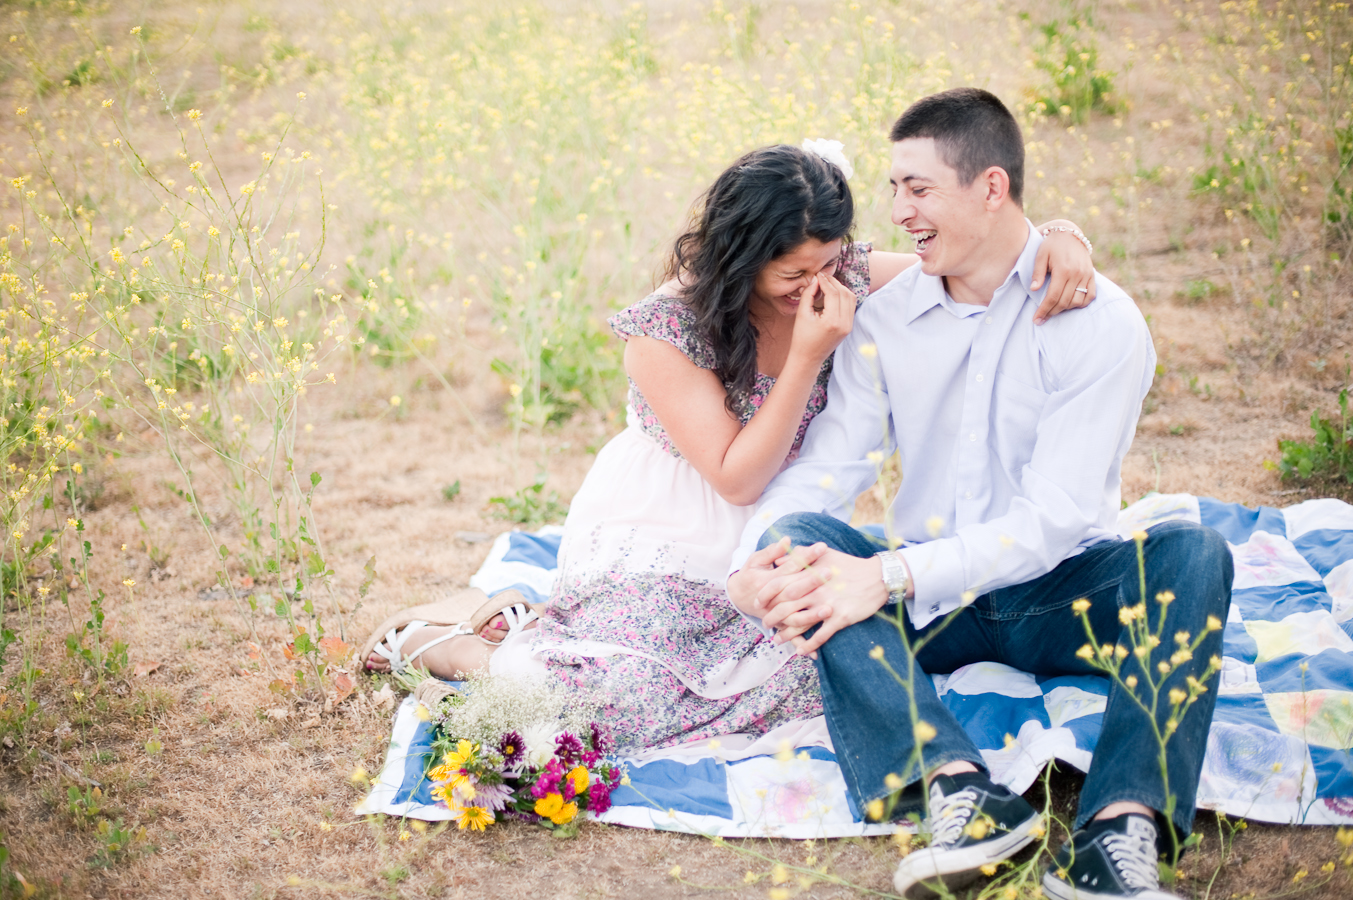 Image 1 of Andrea and Andres' Proposal Story